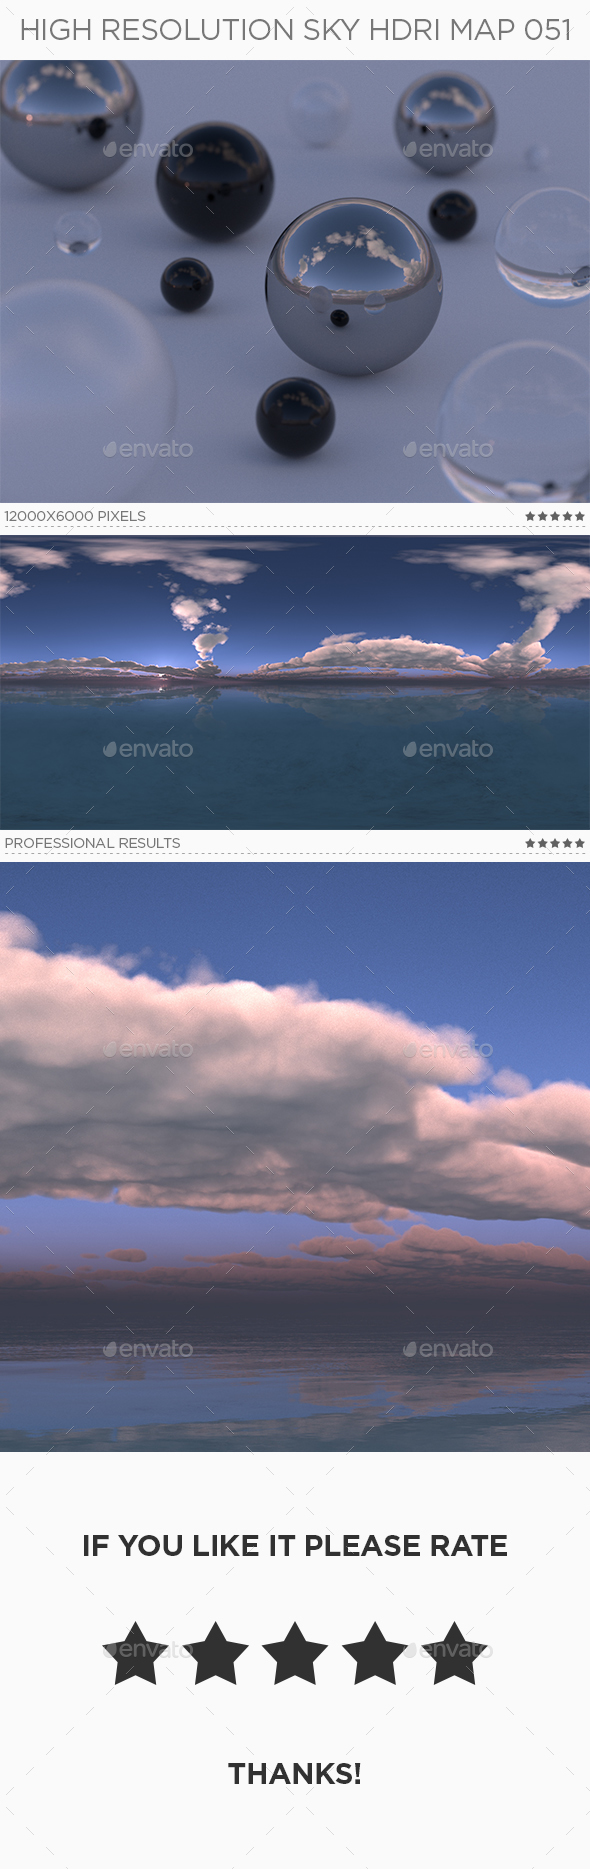 High Resolution Sky HDRi Map 051 - 3DOcean Item for Sale